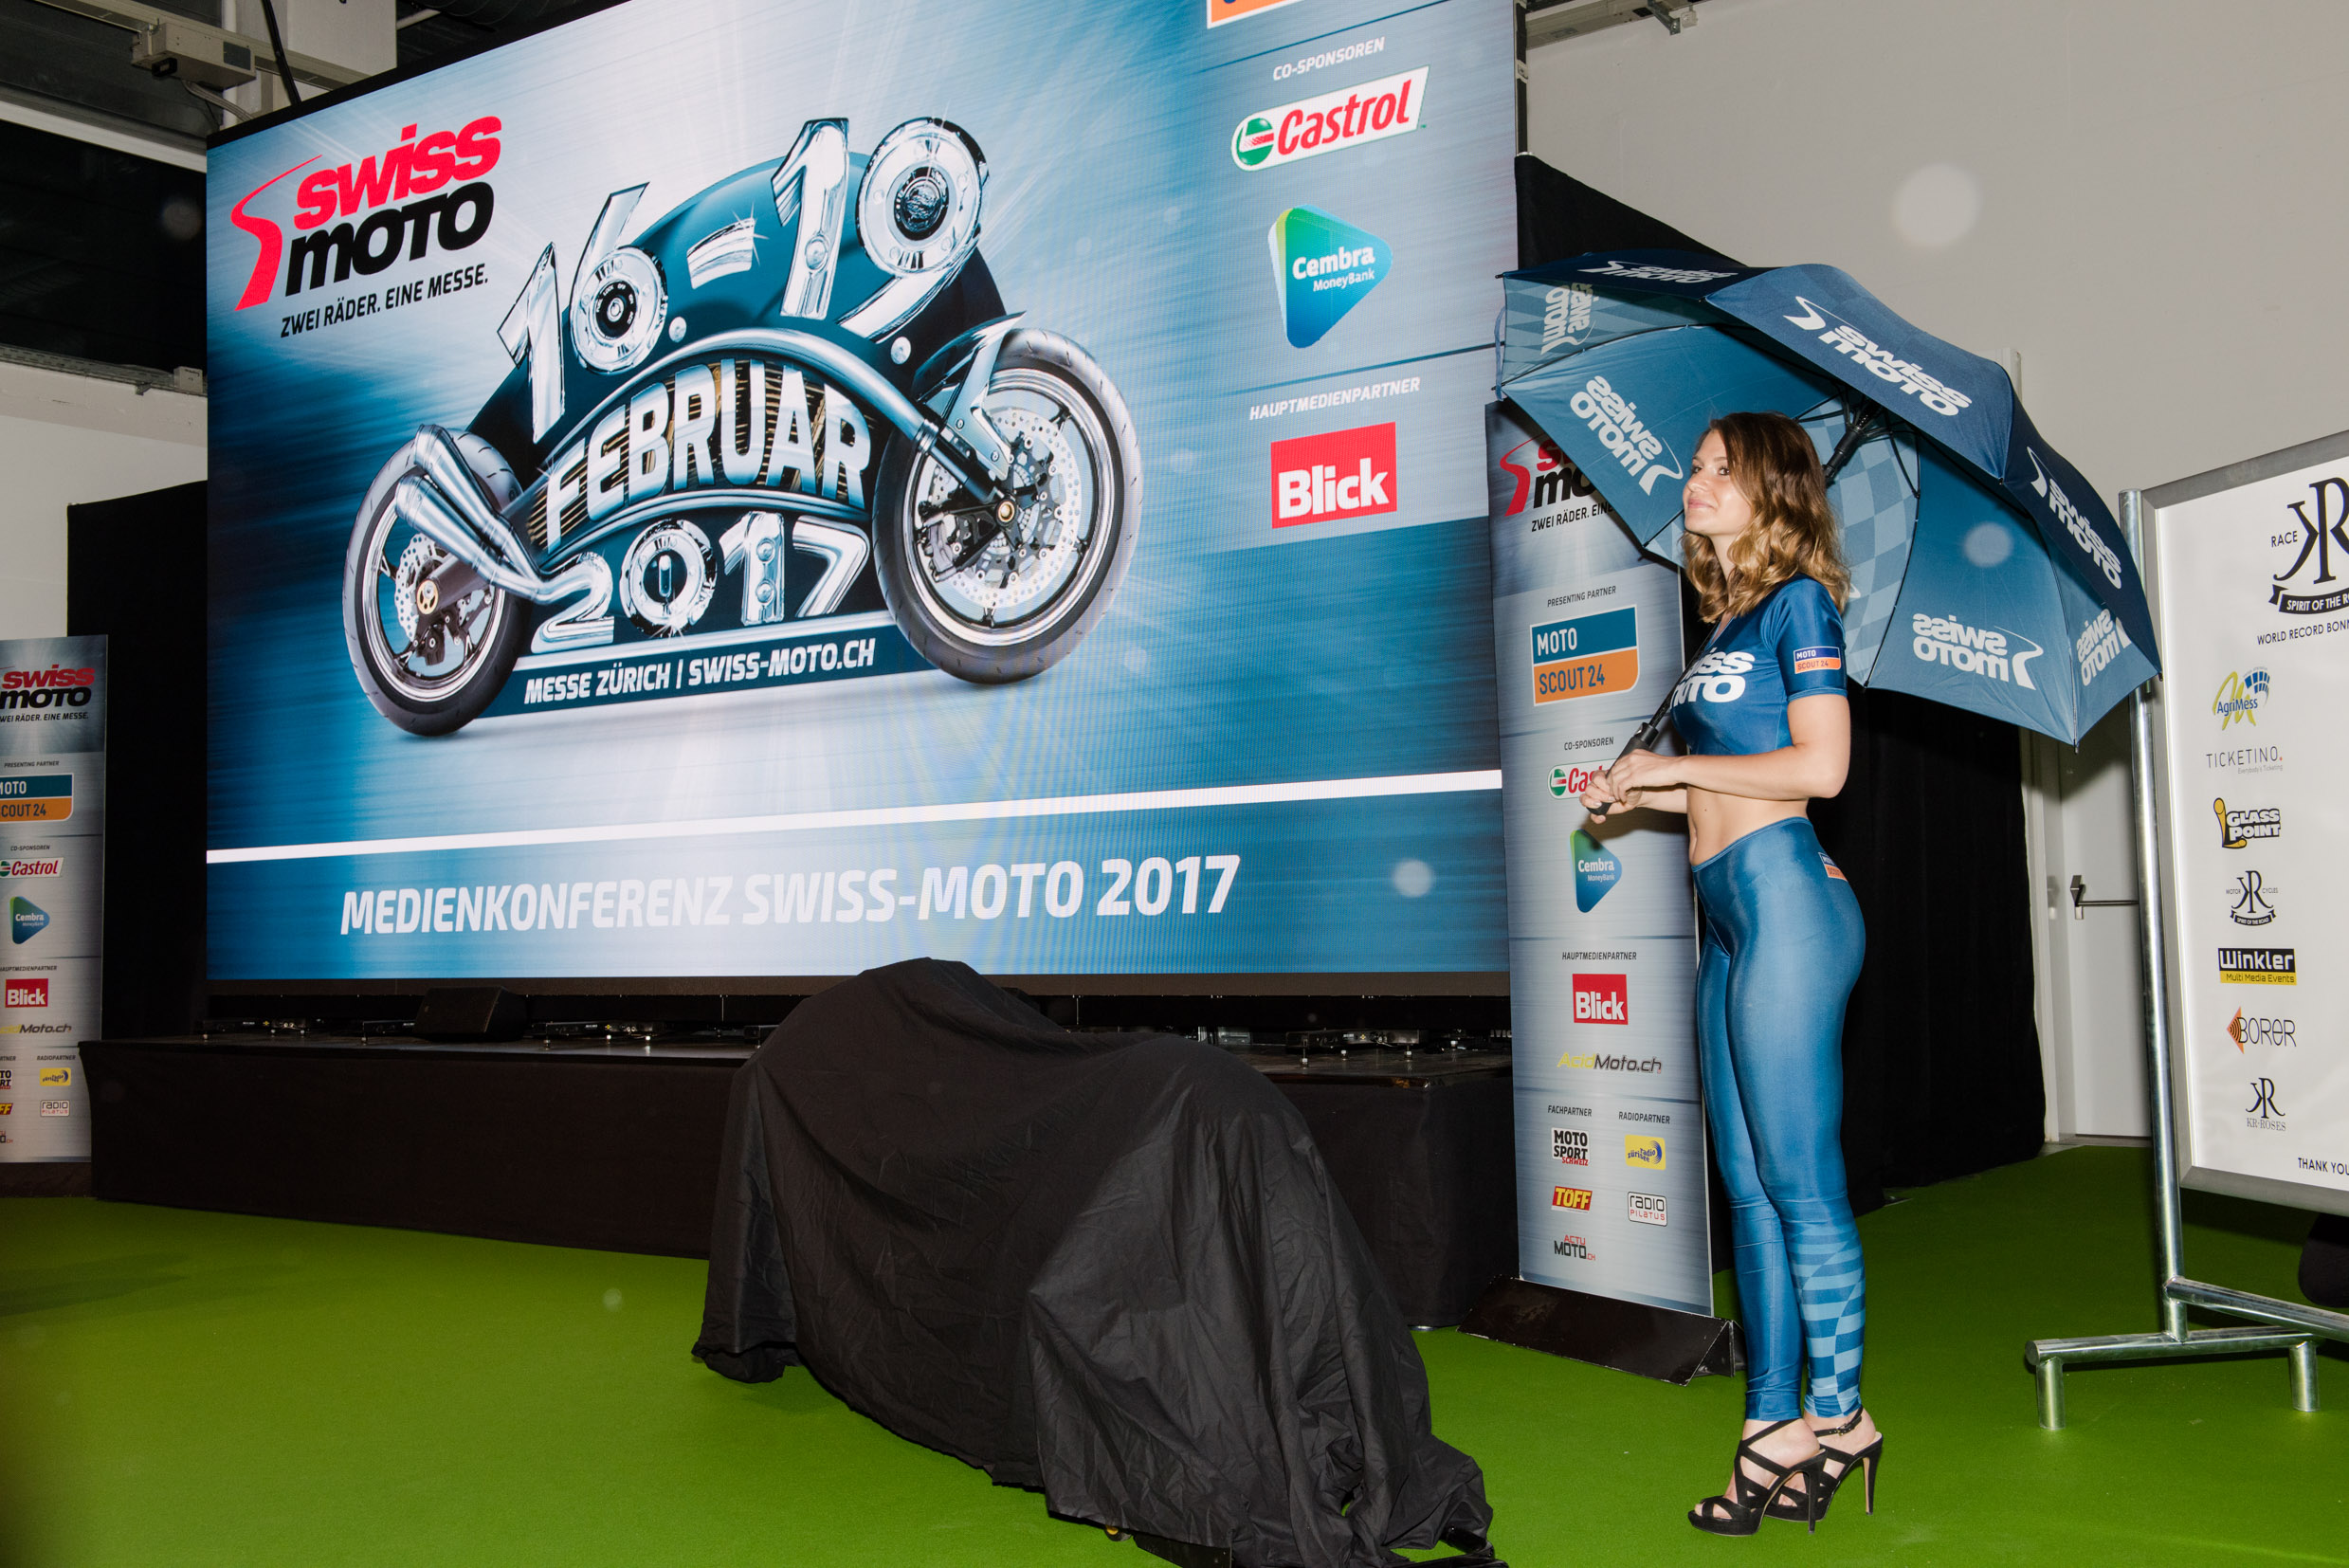 15.02.2017: World premiere at the Swiss-Moto 2017